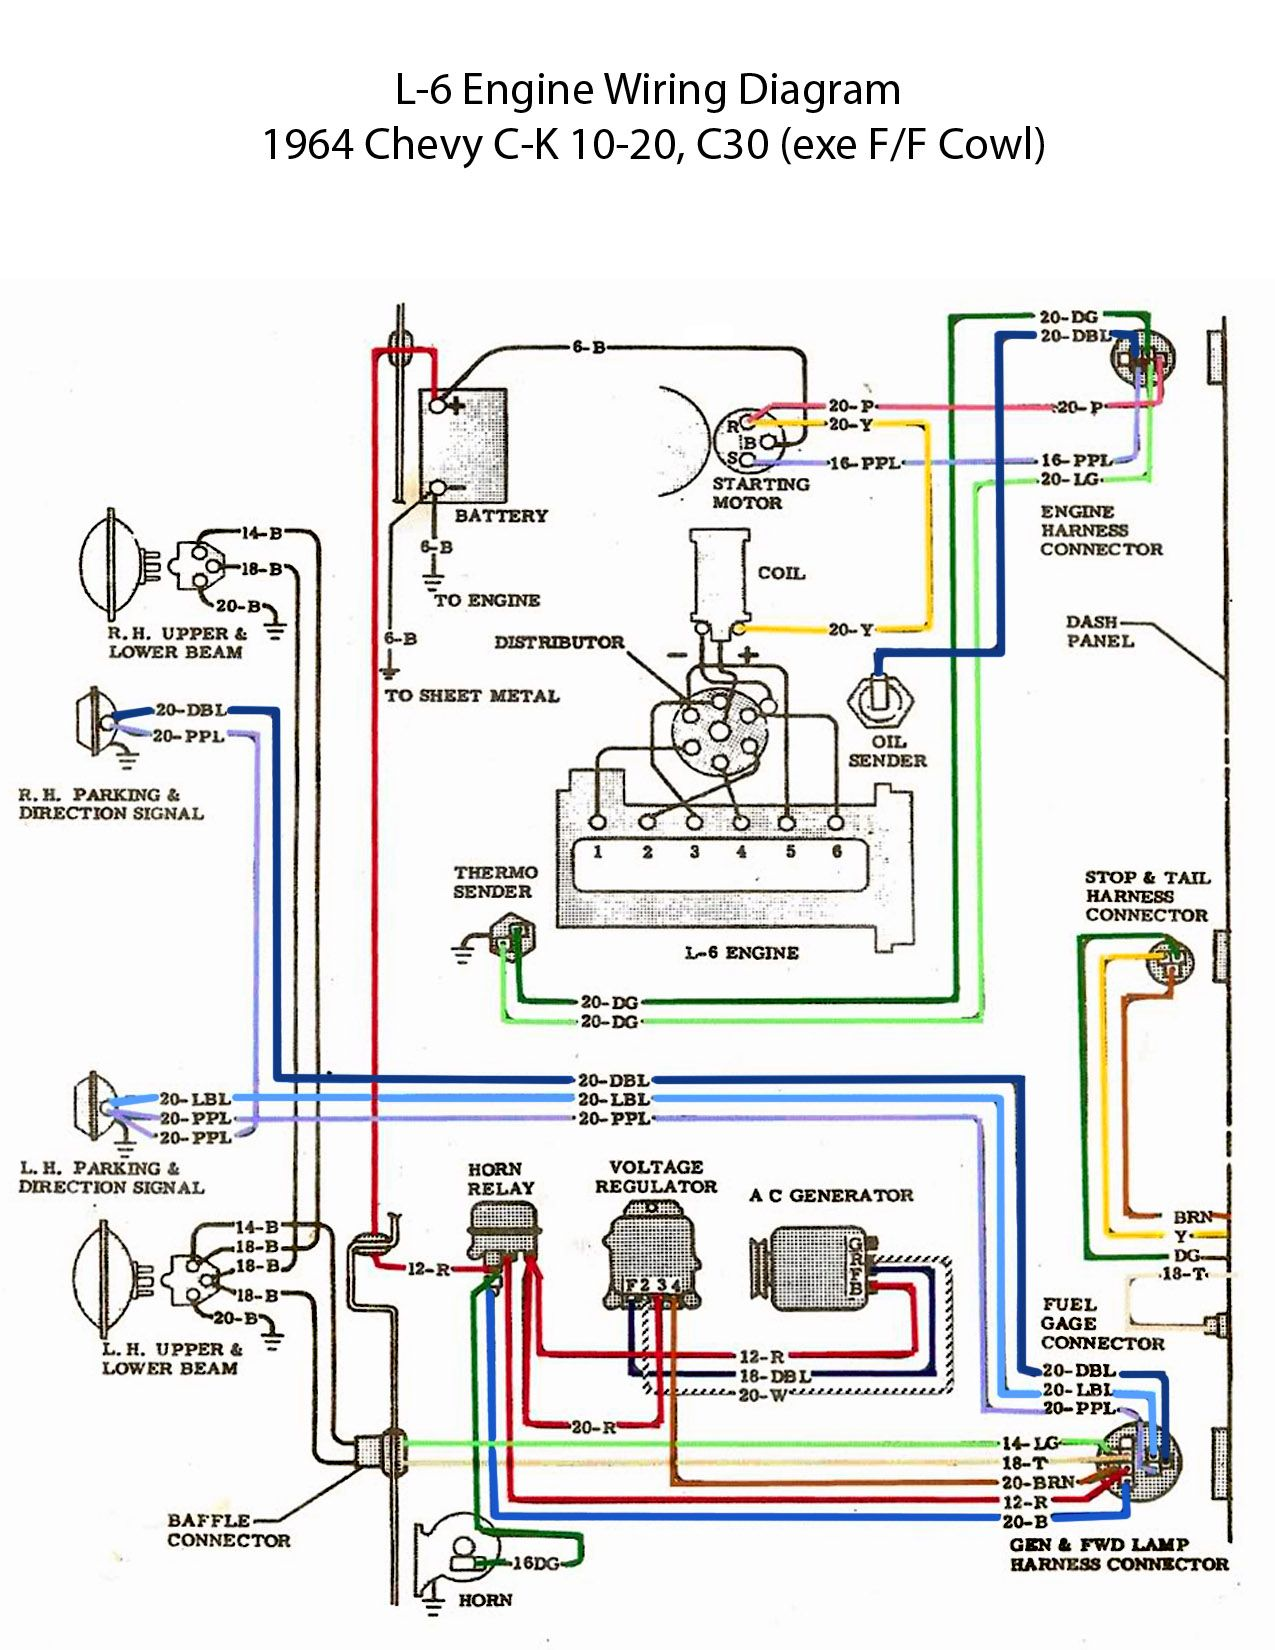 electric: l-6 engine wiring diagram